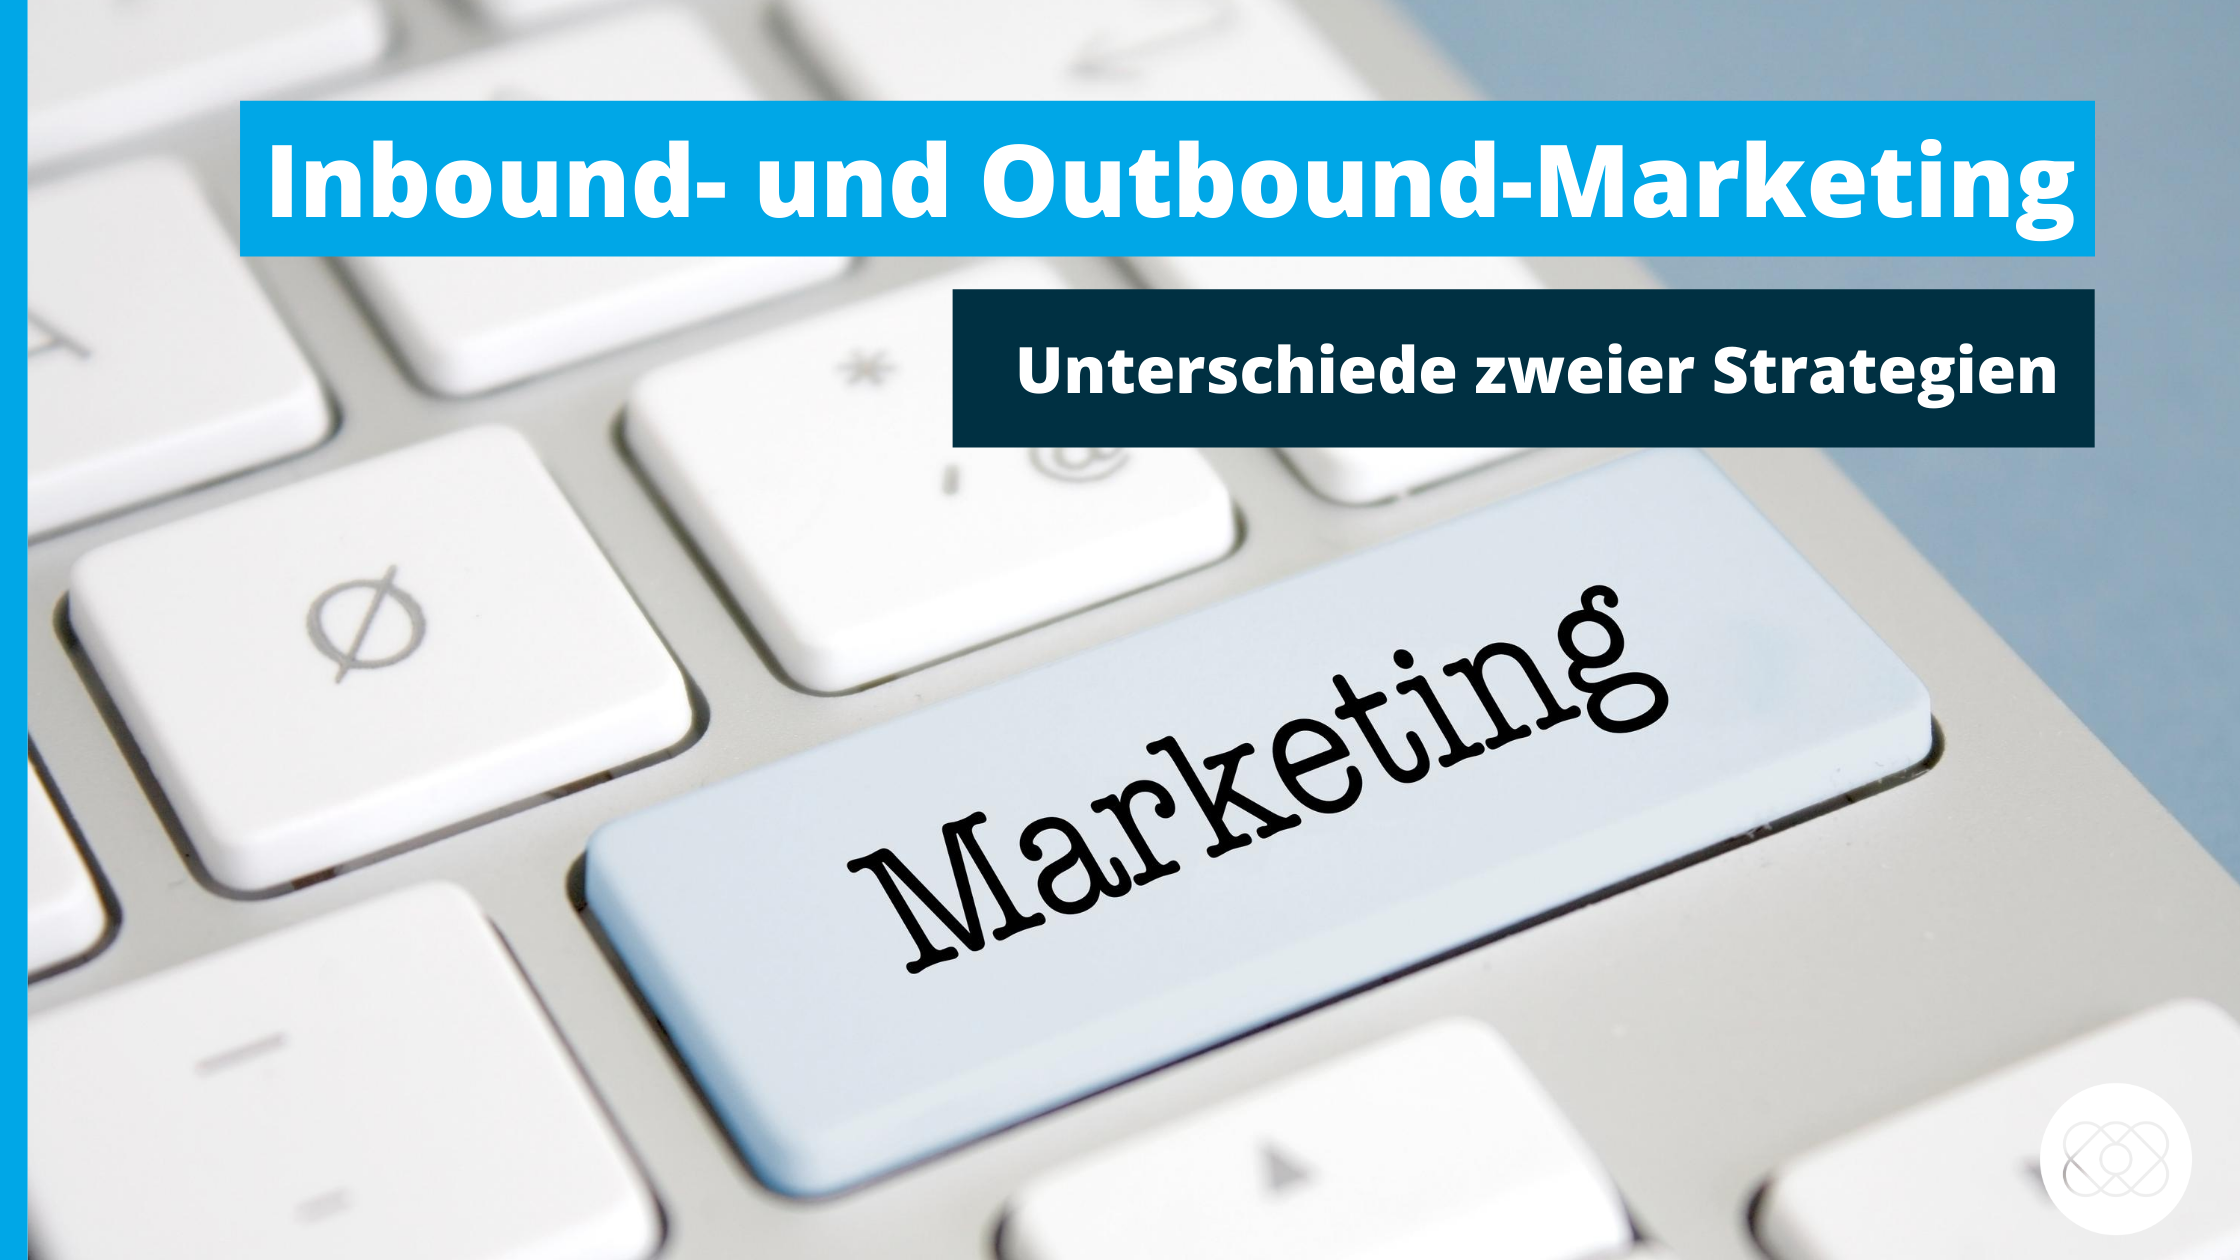 Inbound und Outbound Marketing